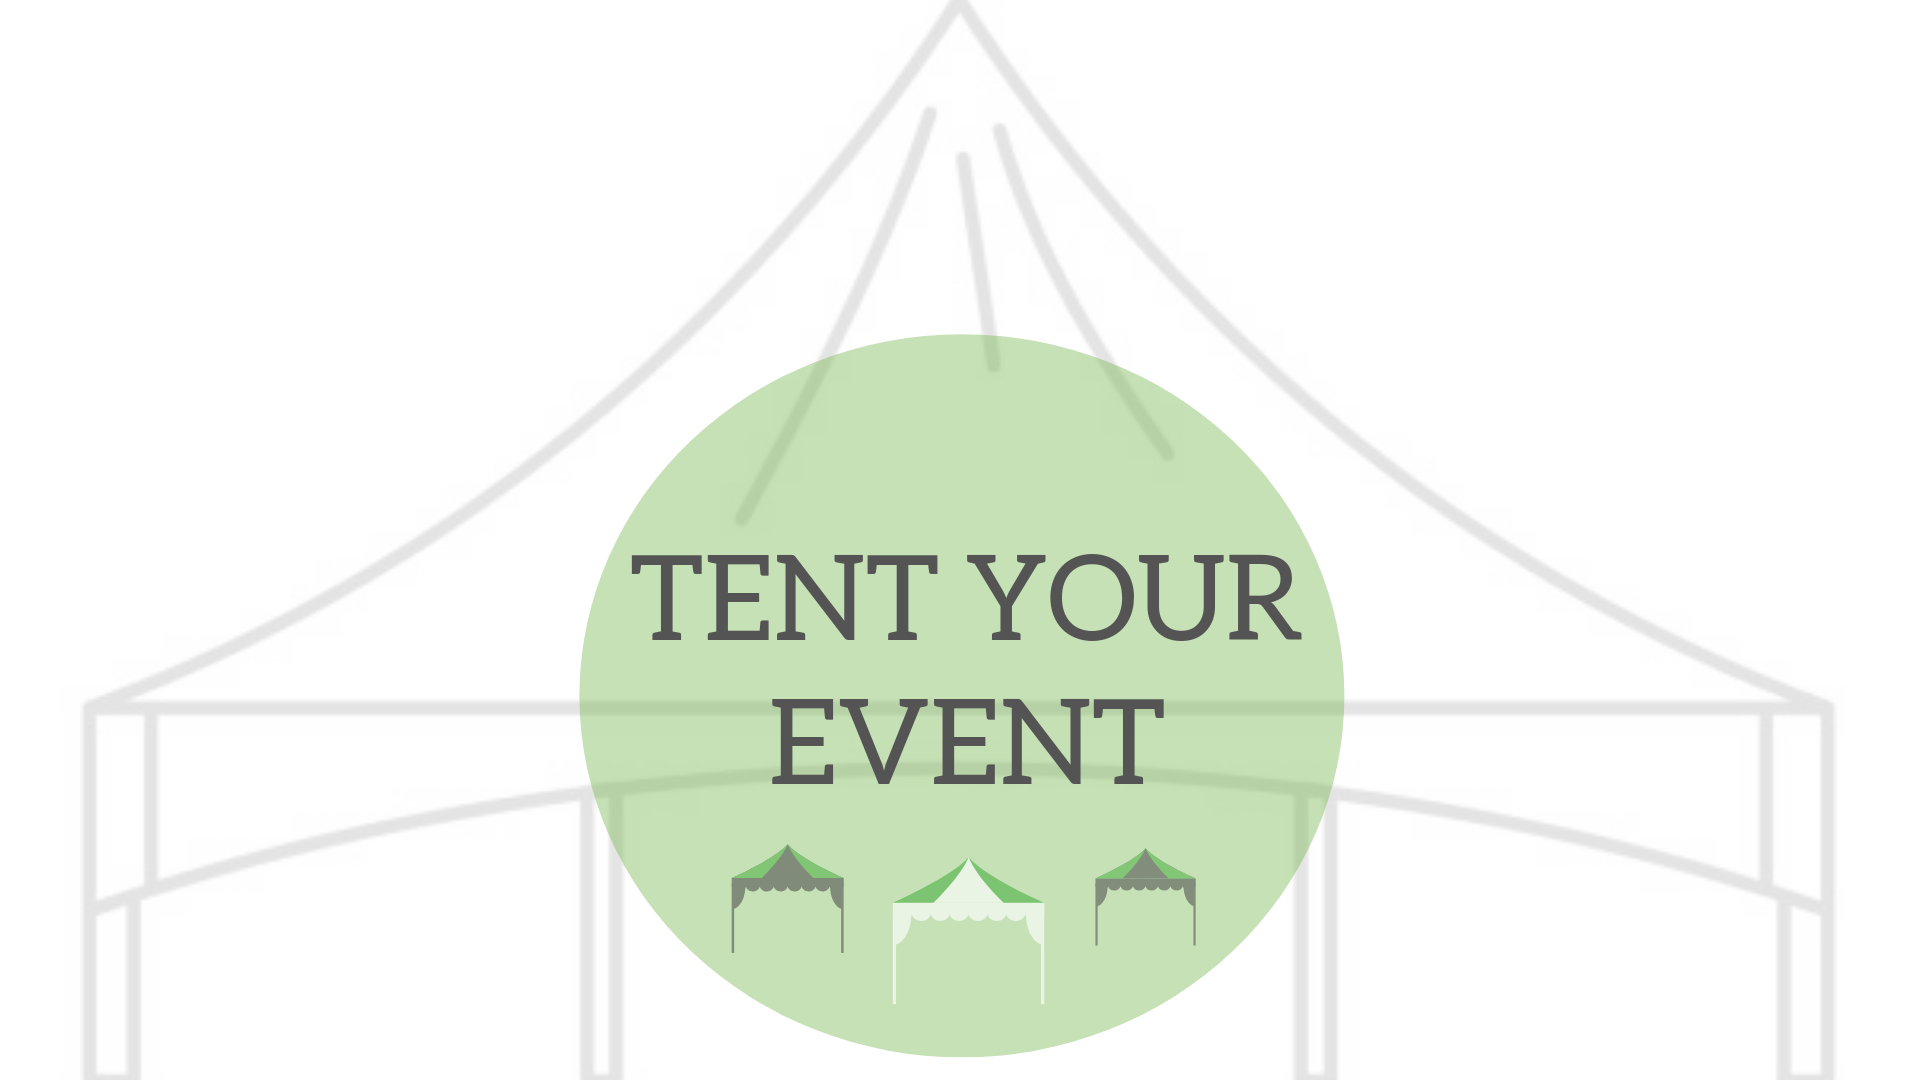 Tent Your Event